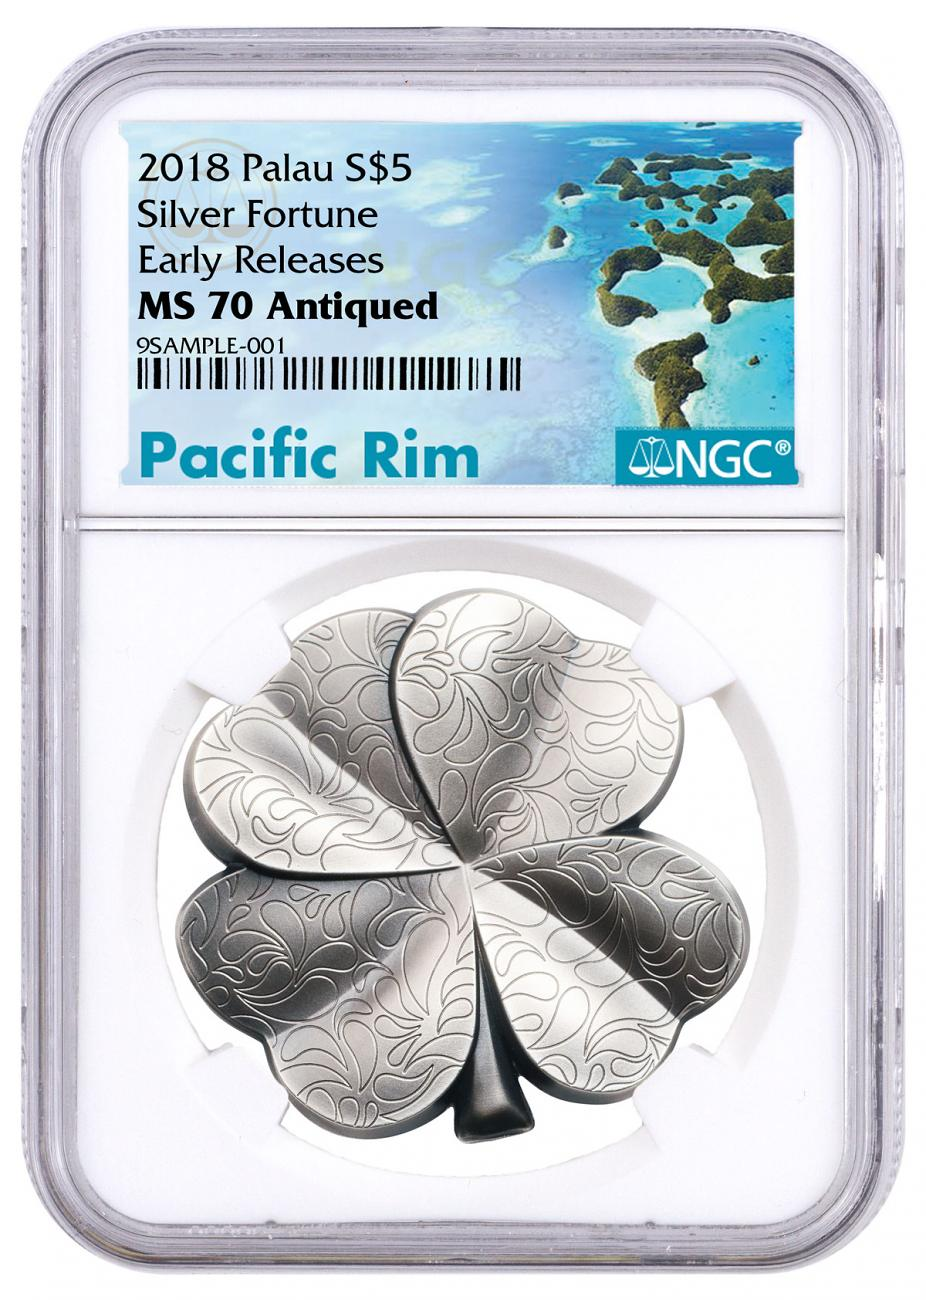 2018 Palau Fortune - Four-Leaf Clover Shaped 1 oz Silver Antiqued $5 Coin NGC MS70 ER Exclusive Pacific Rim Label